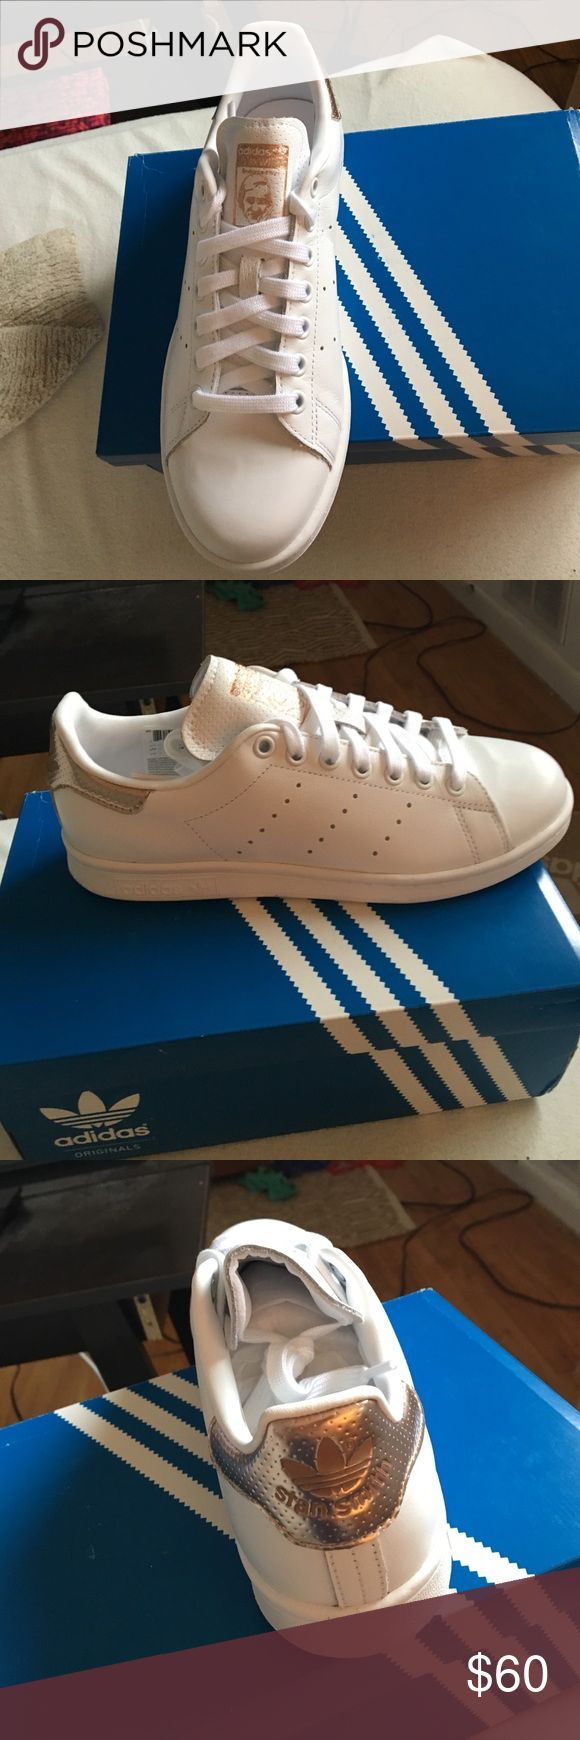 Rose gold Stan smiths Never worn rare Stan smiths! I have size 7.5 and 8 Adidas Shoes Athletic Shoes